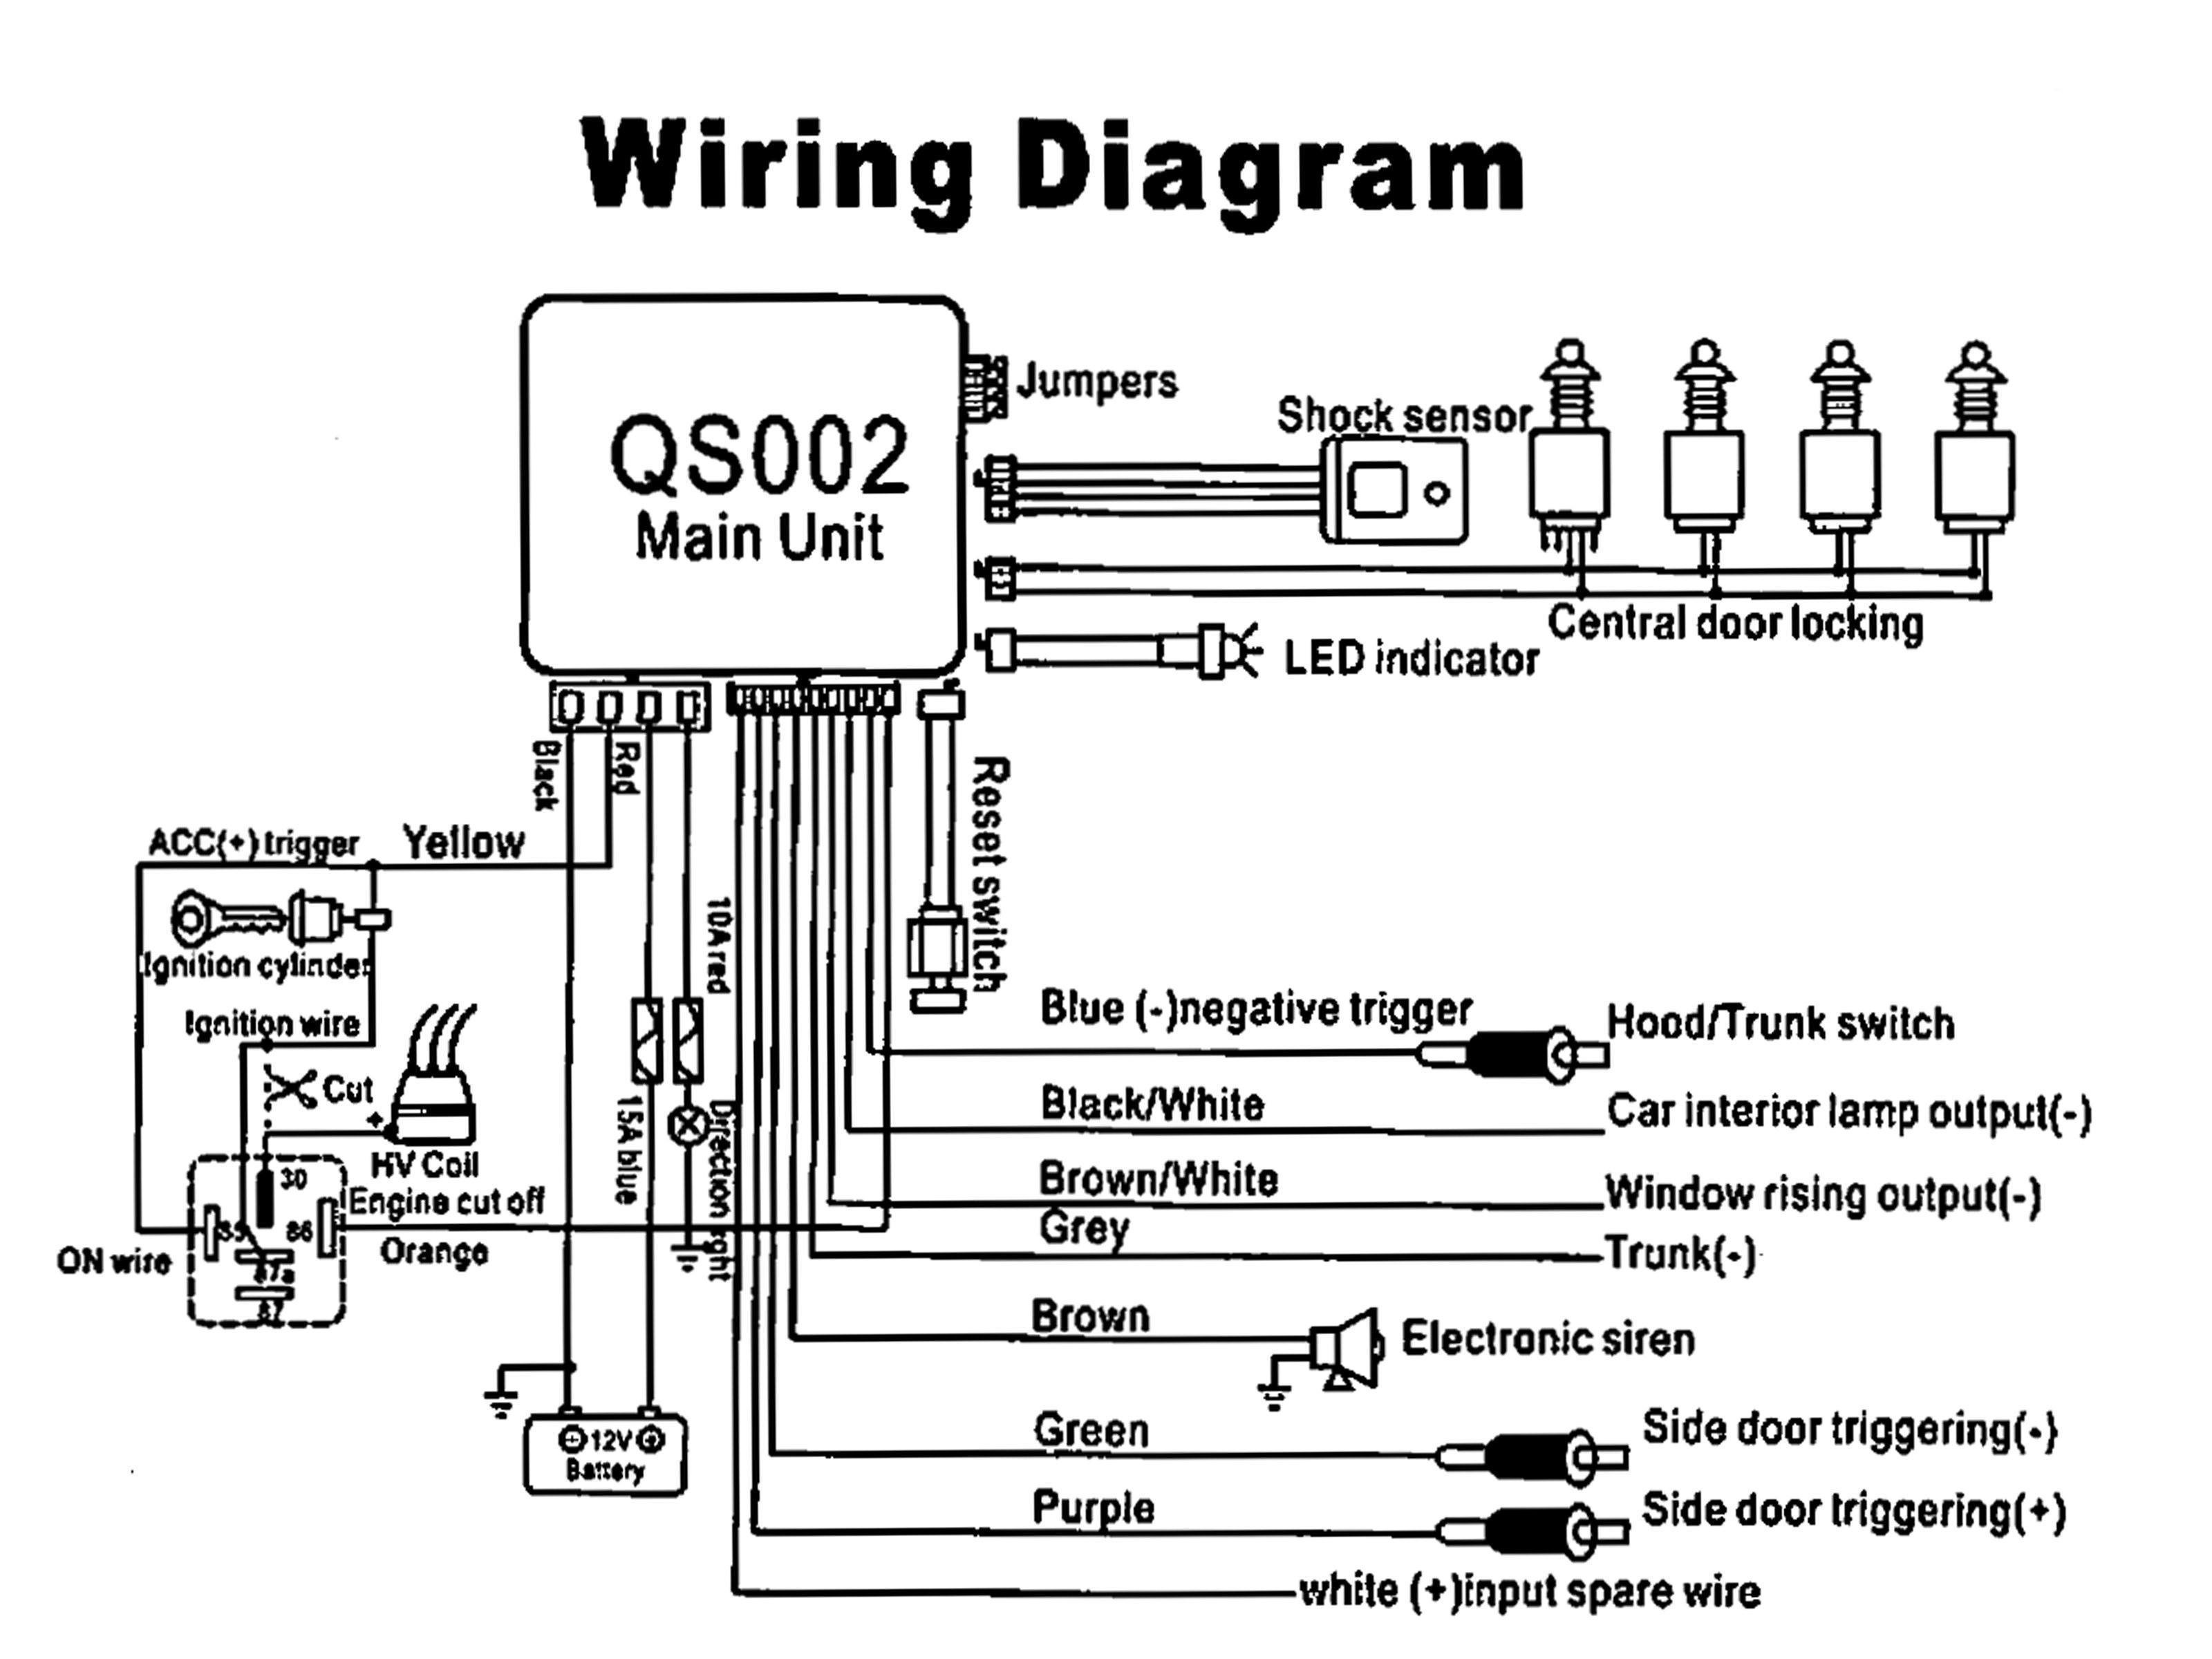 Car Security Wiring Diagram Will Be A Thing 2000 Gmc W4500 Heater Hornet Alarm And Bulldog